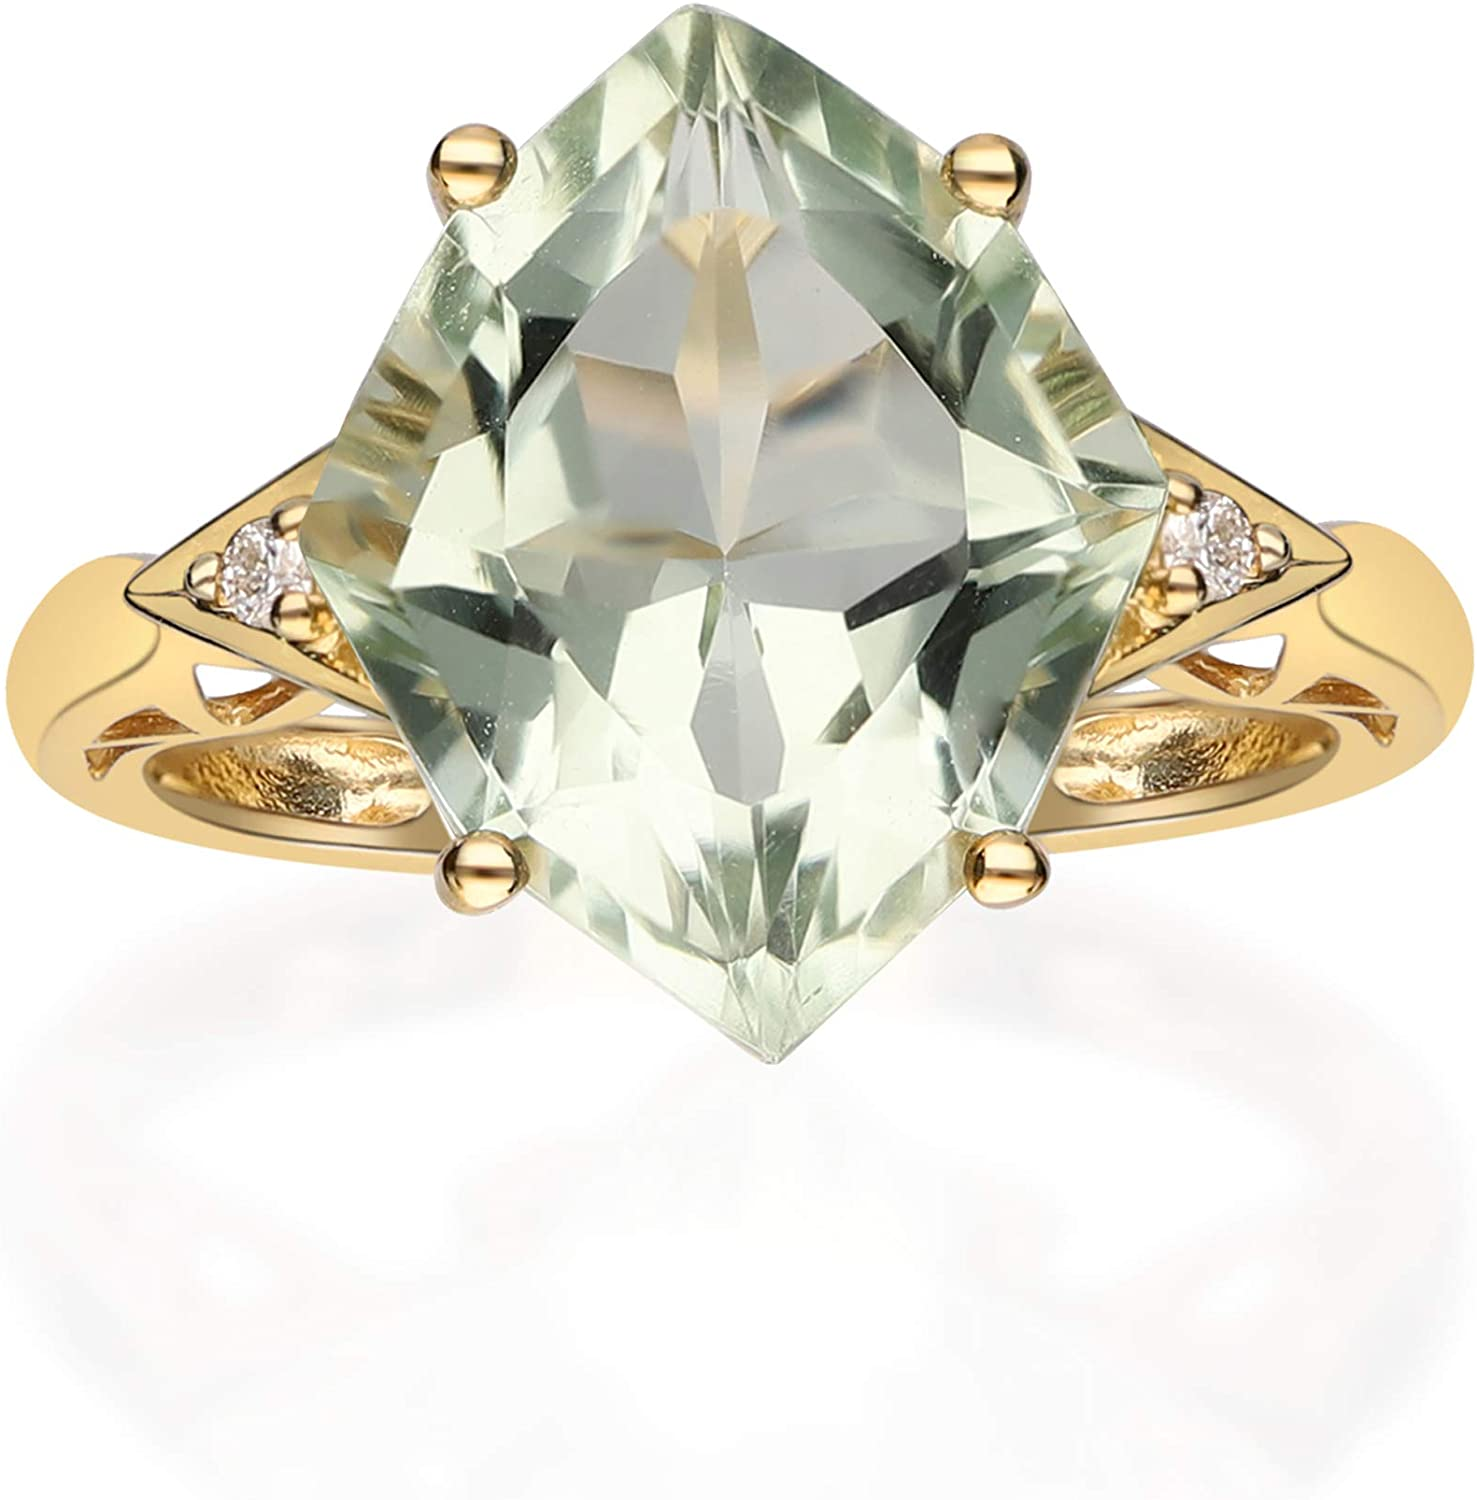 Gin & Grace 10K Yellow Gold Real Diamond Ring (I1) with Genuine Green Amethyst Daily Work Wear Jewelry for Women Gifts for Her